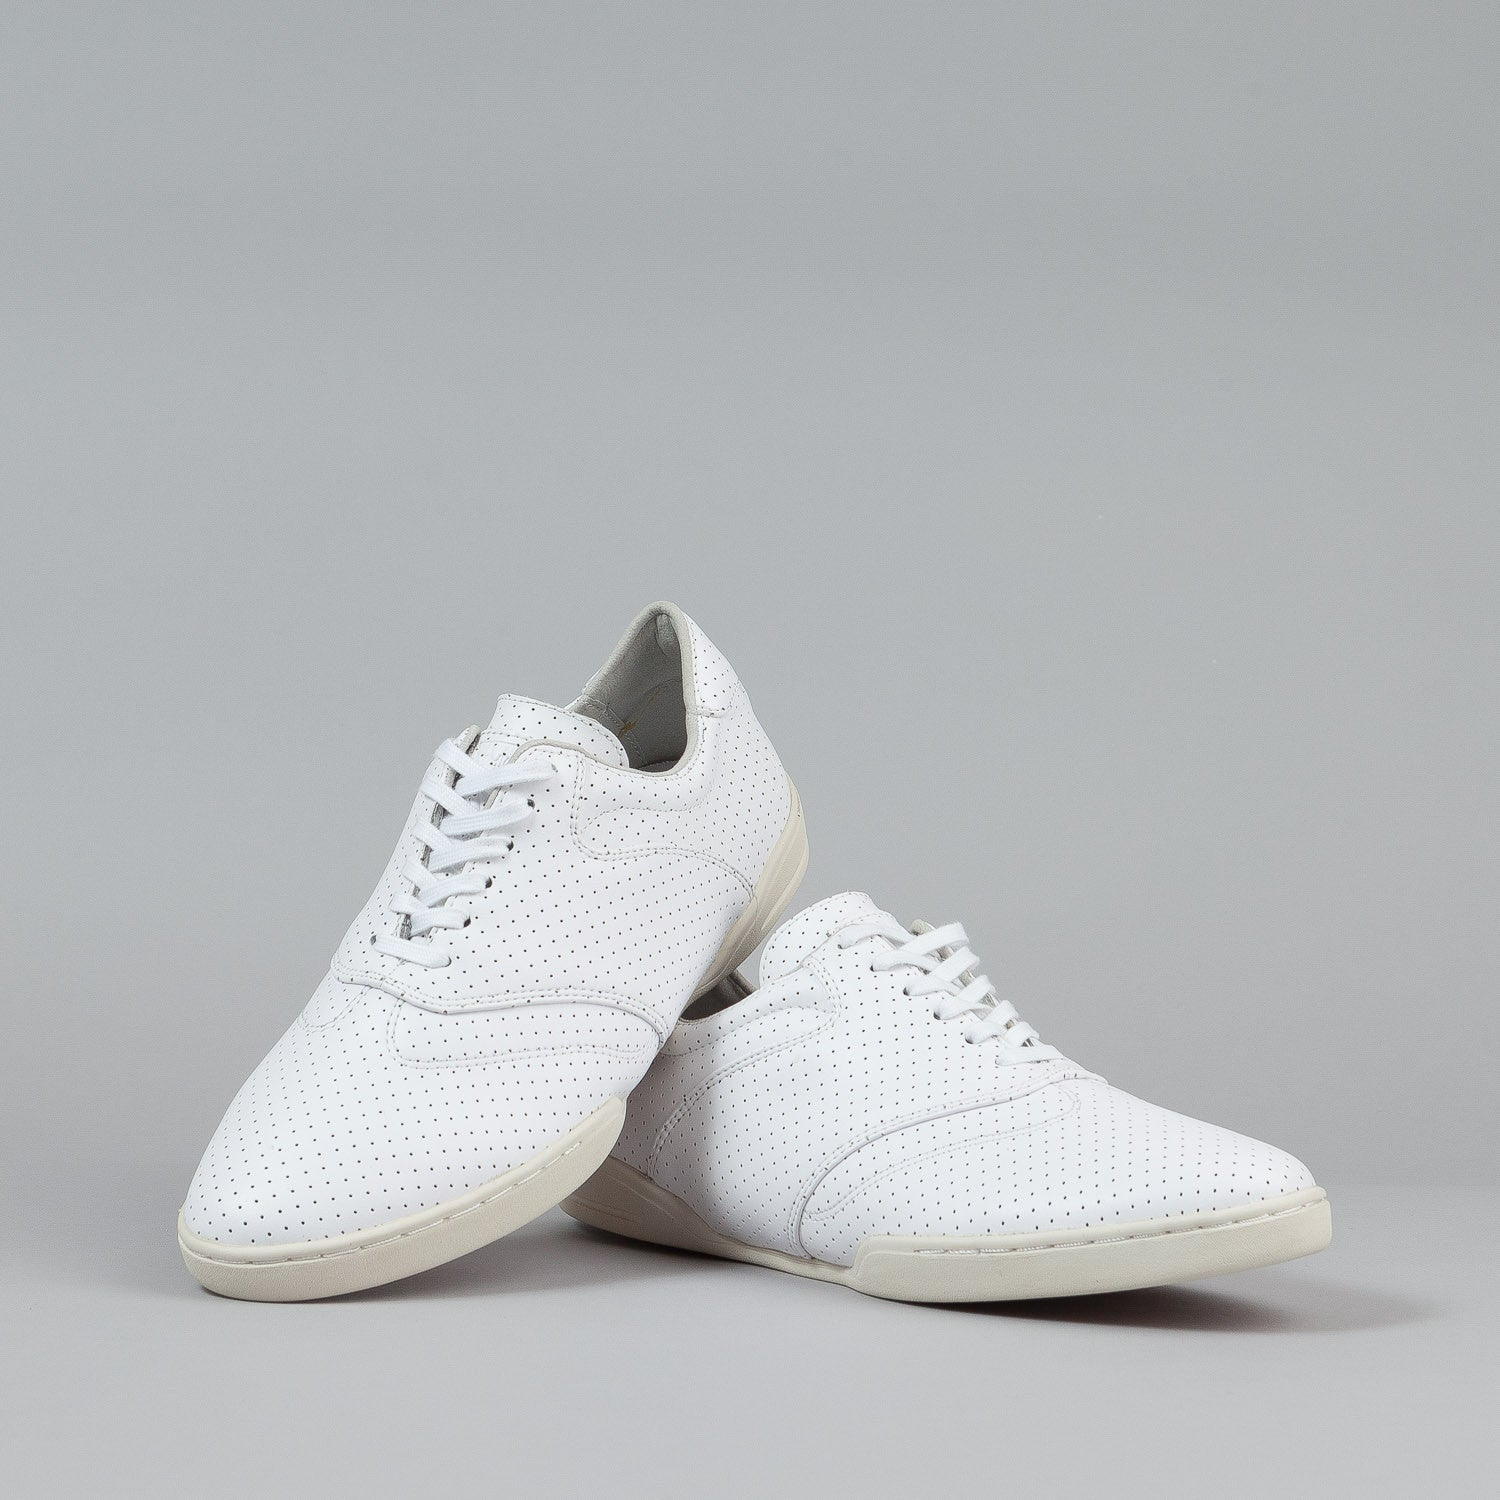 HUF Dylan Shoes - White Perf Leather